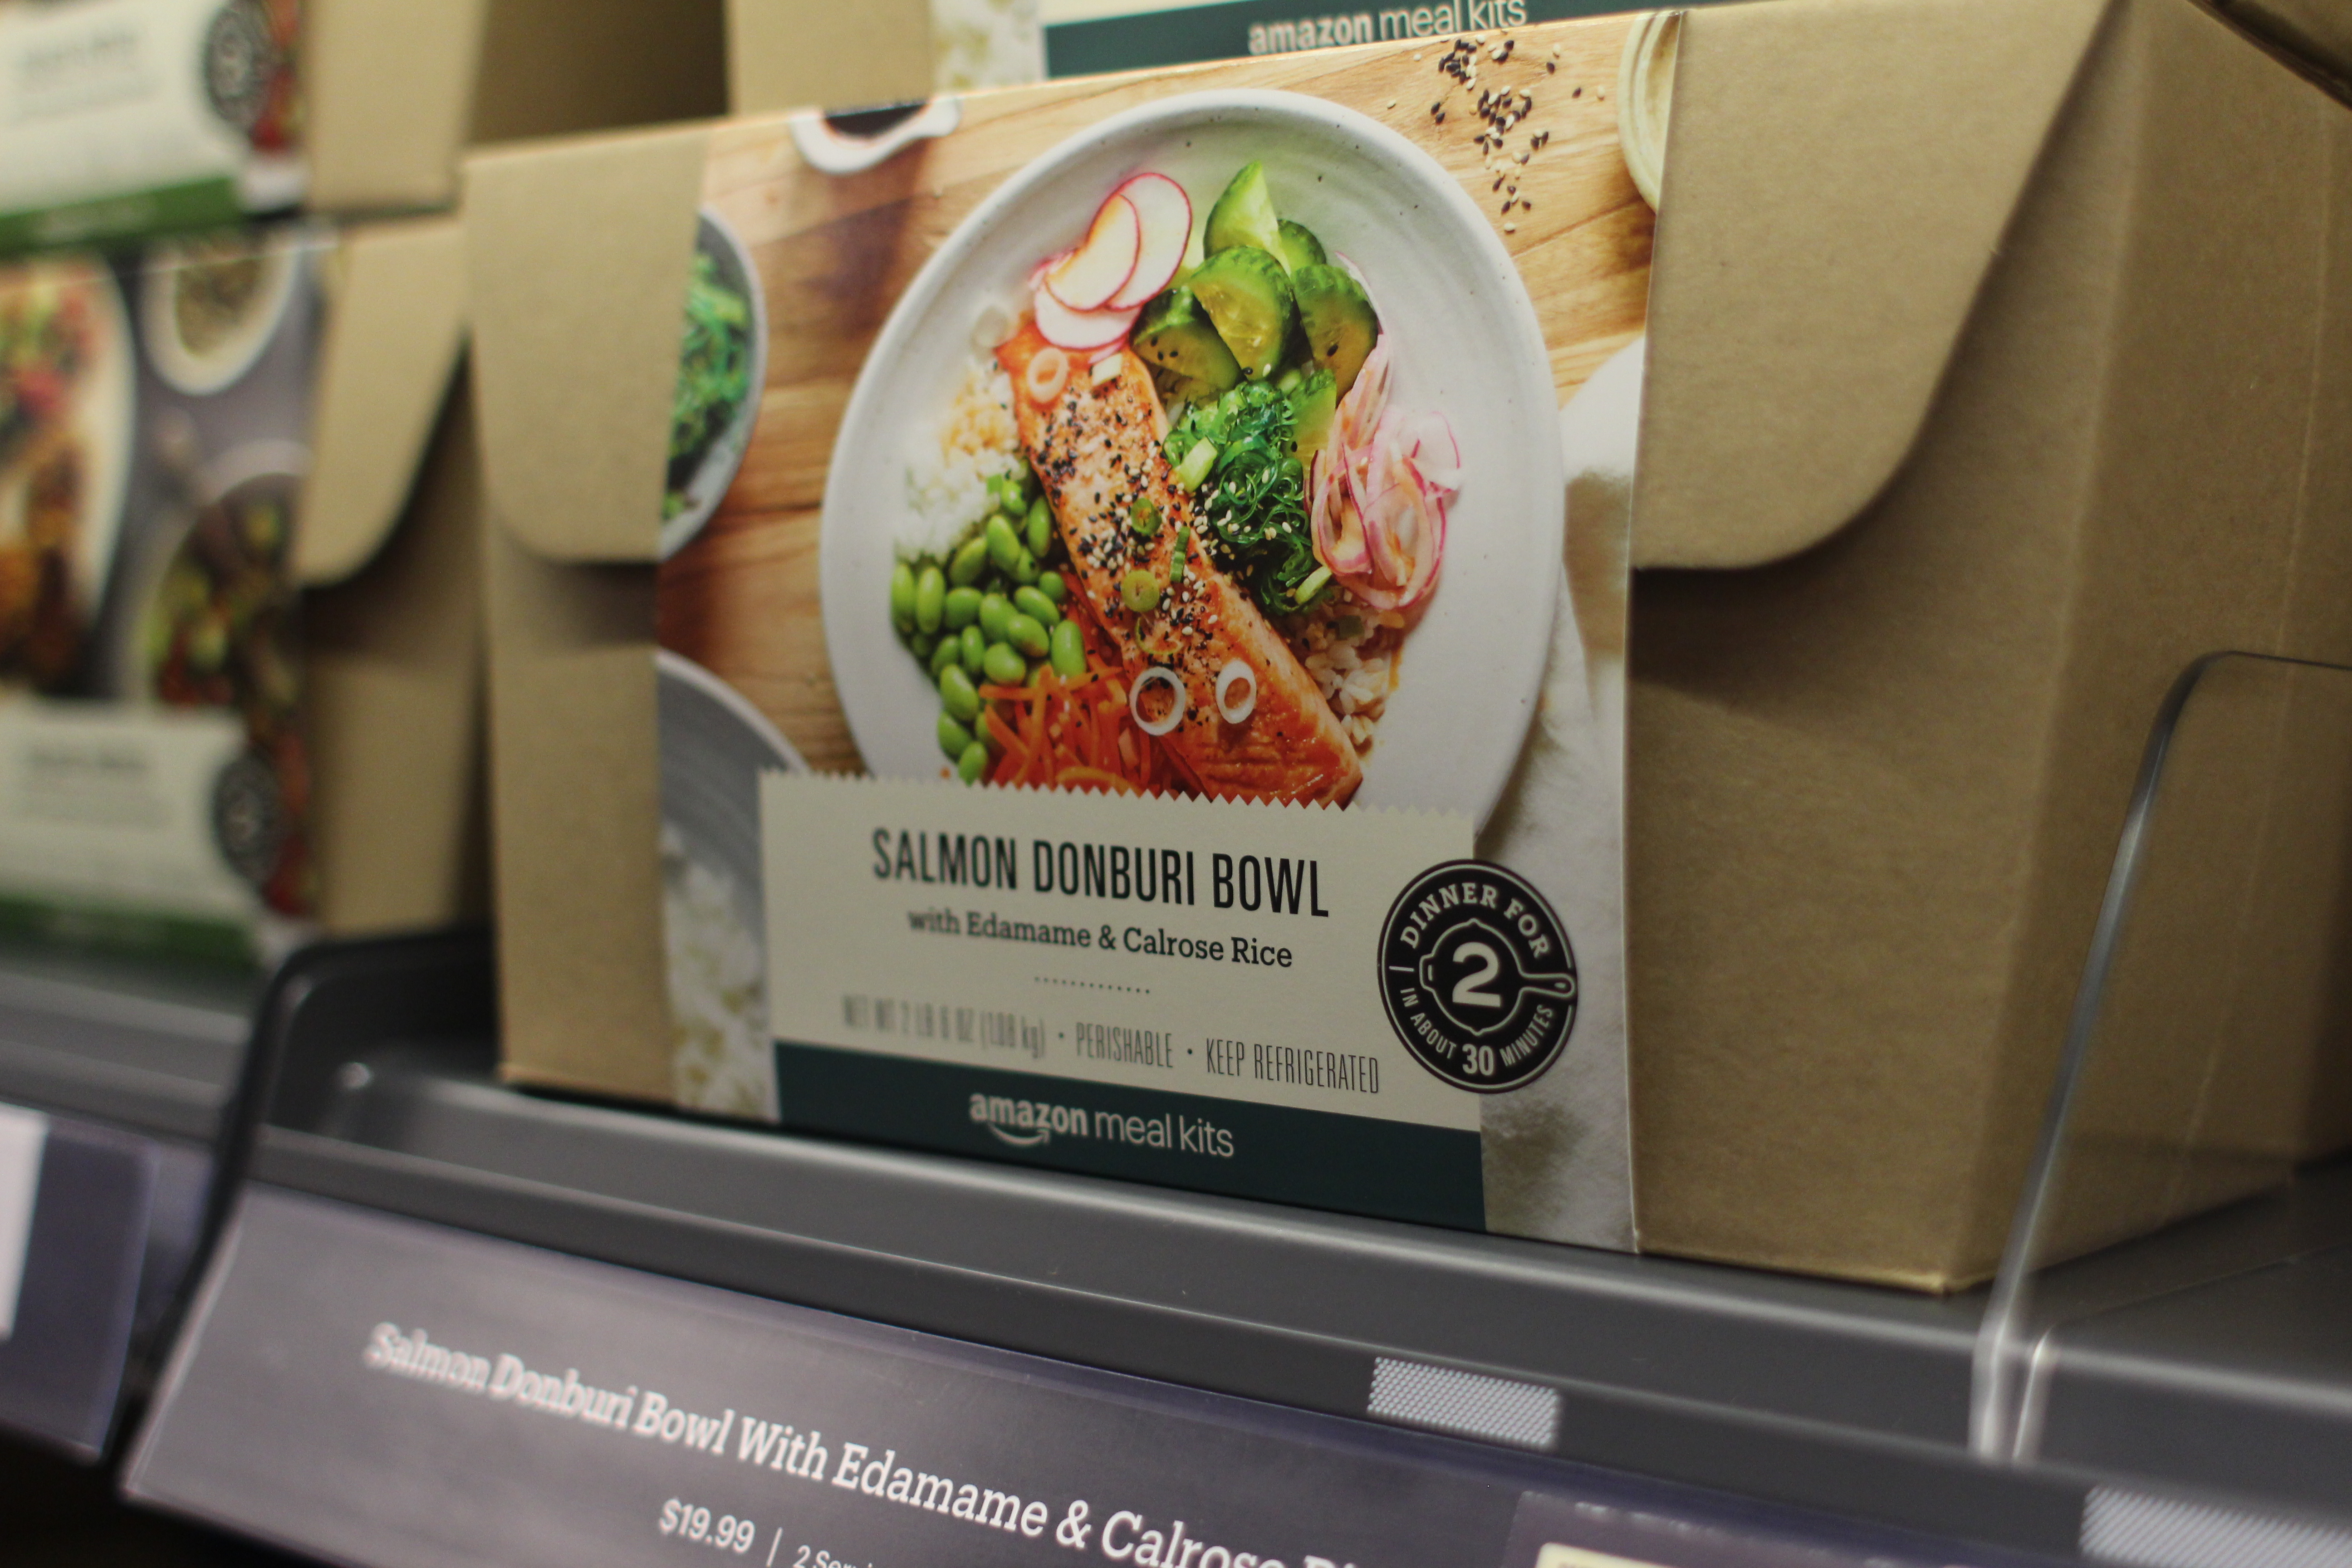 Amazon Whole Foods With Whole Foods Debut Amazon Meal Kits Are Just Getting